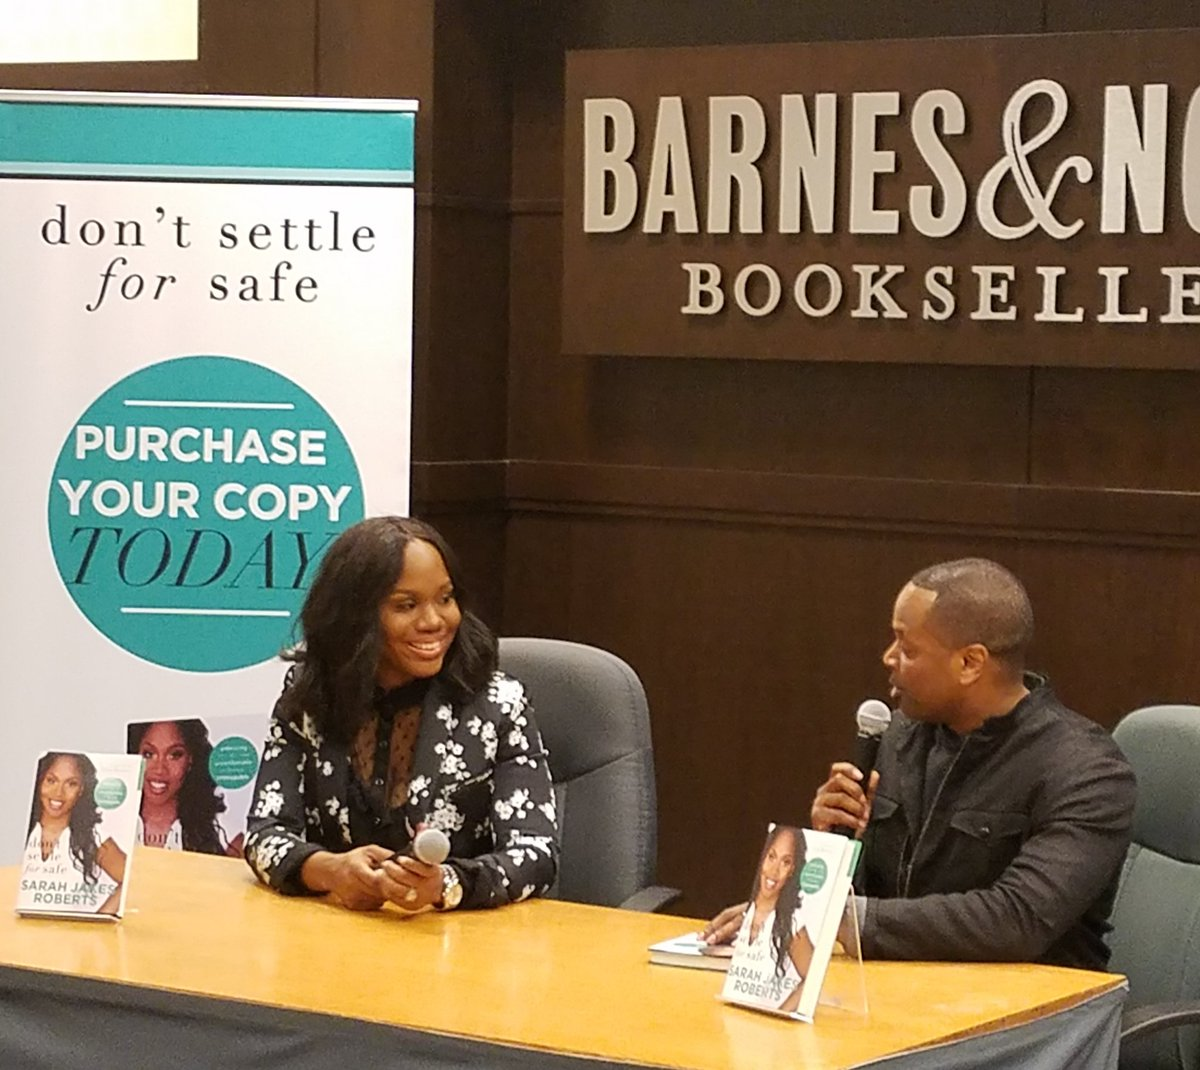 Barnes Noble Events The Grove On Twitter Happening Now